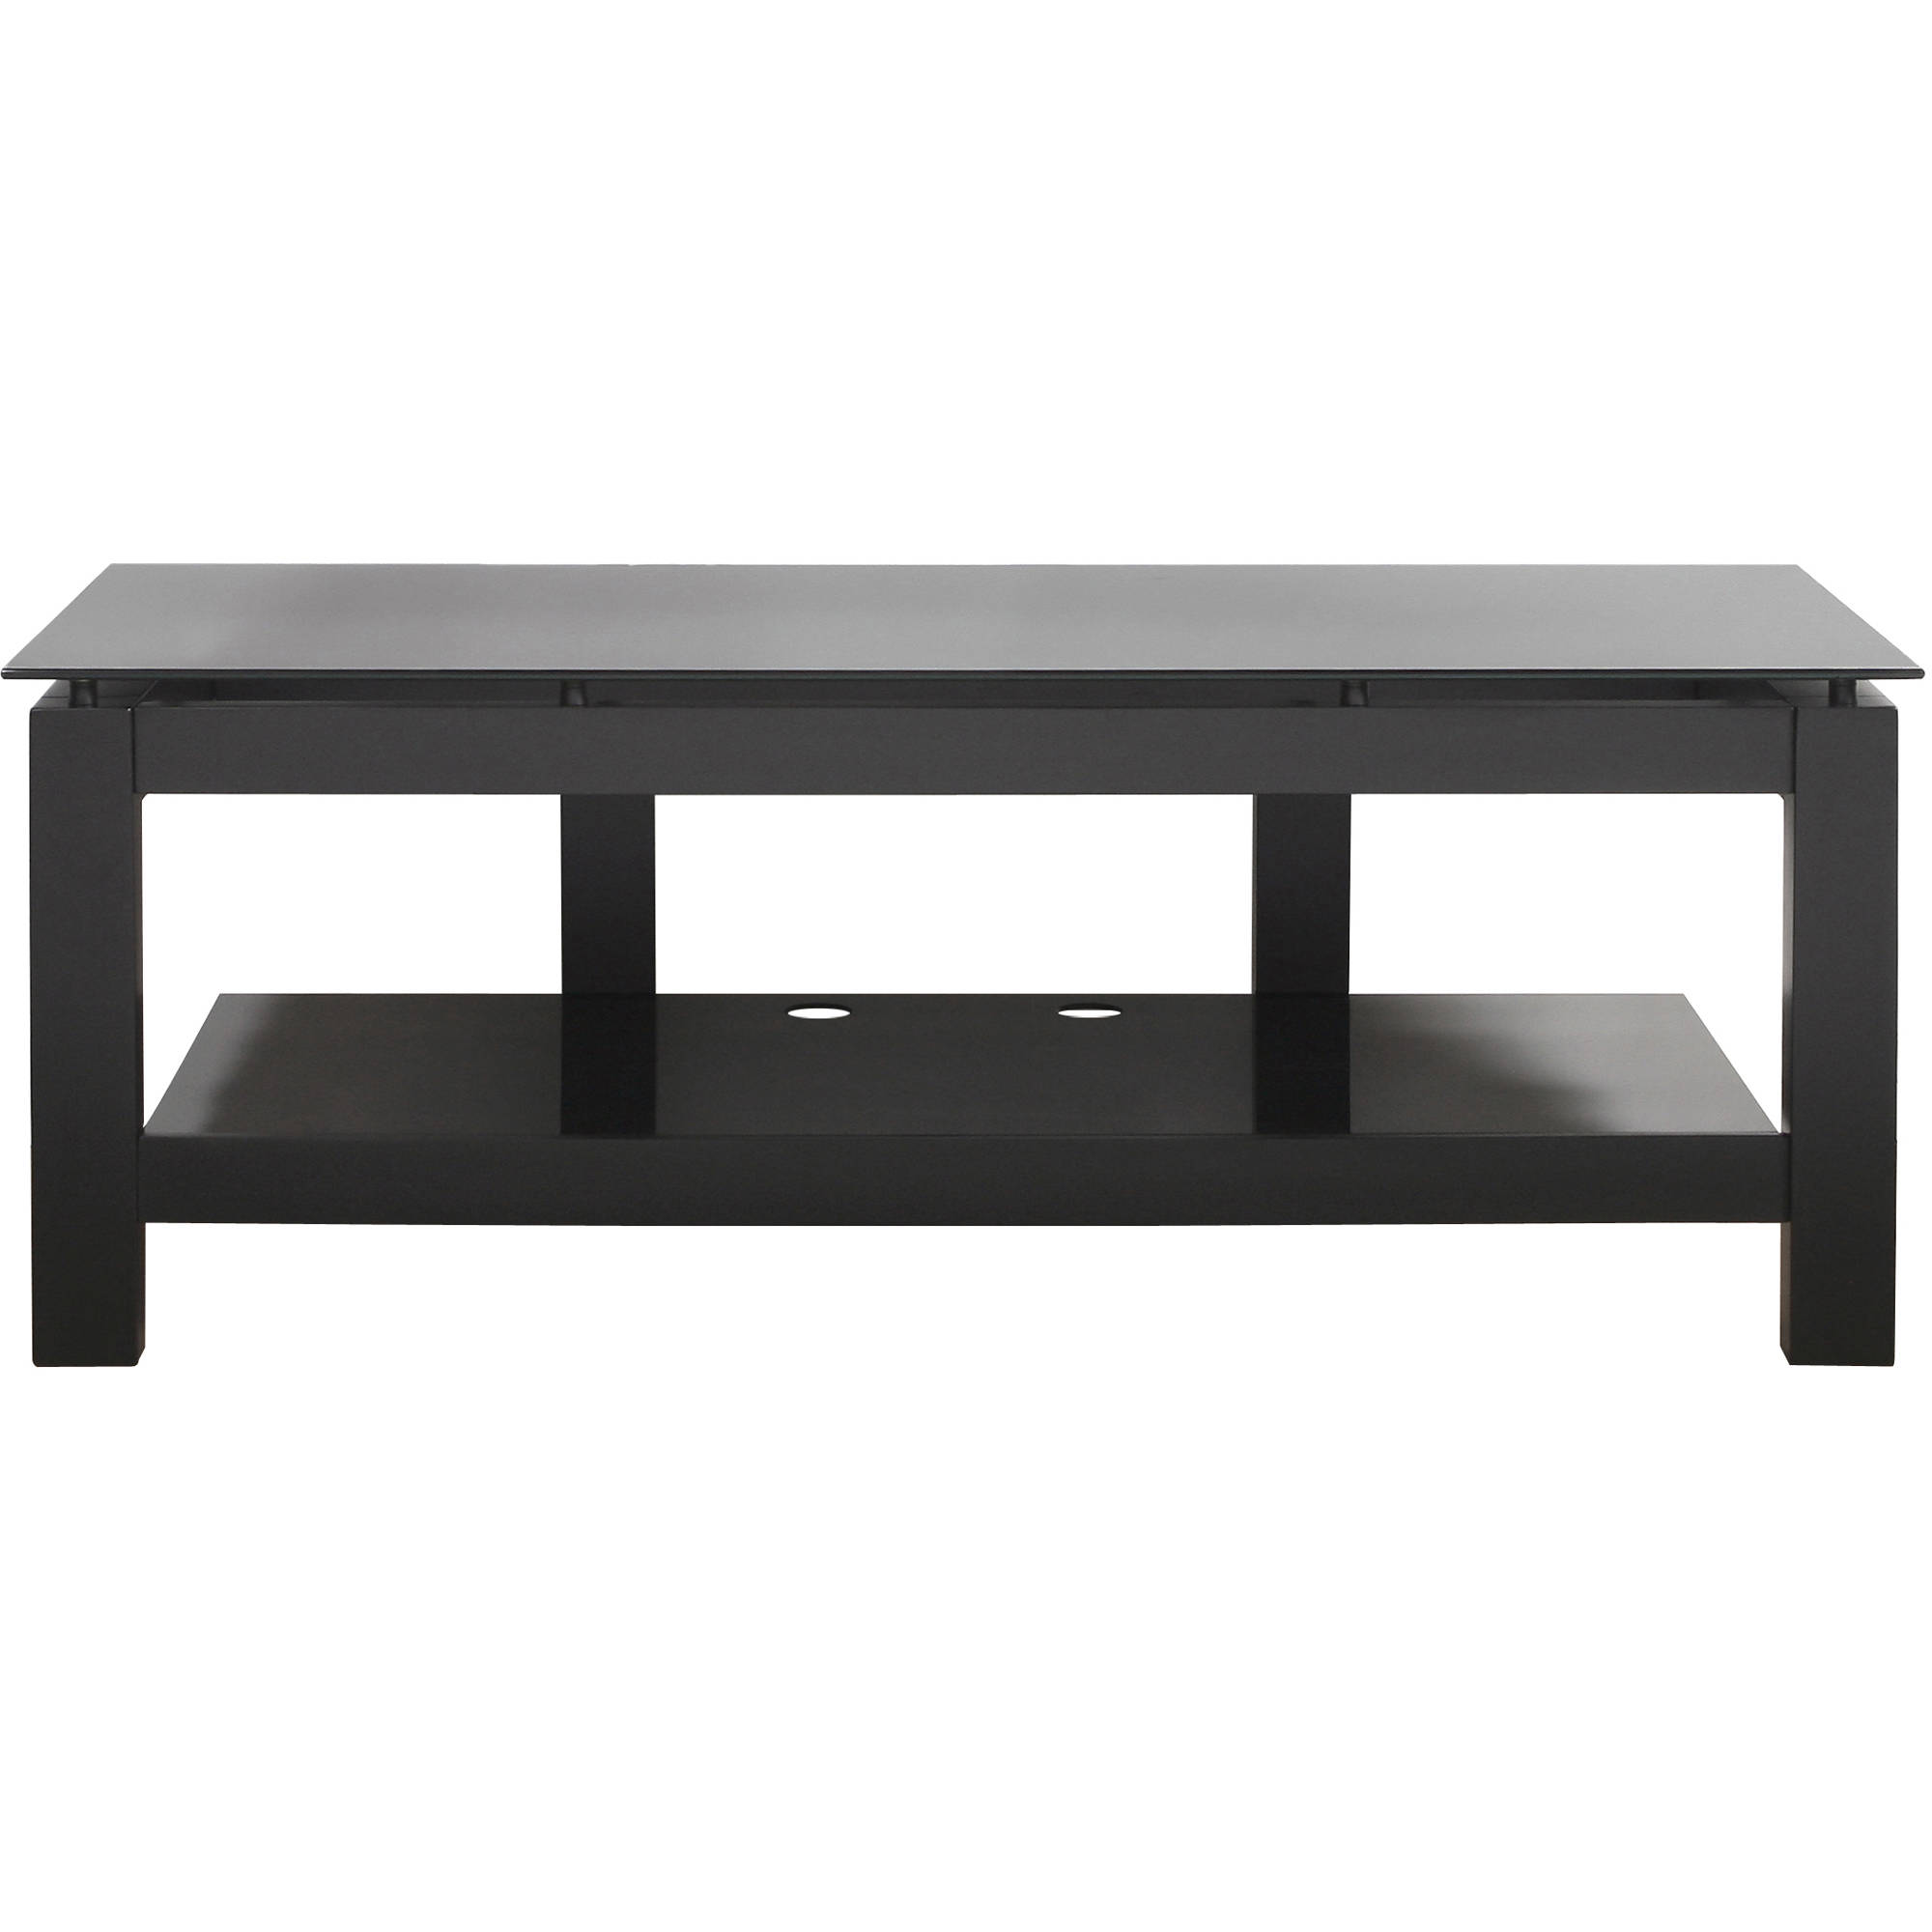 PLATEAU SL 2V 50 TV Stand With Black Glass